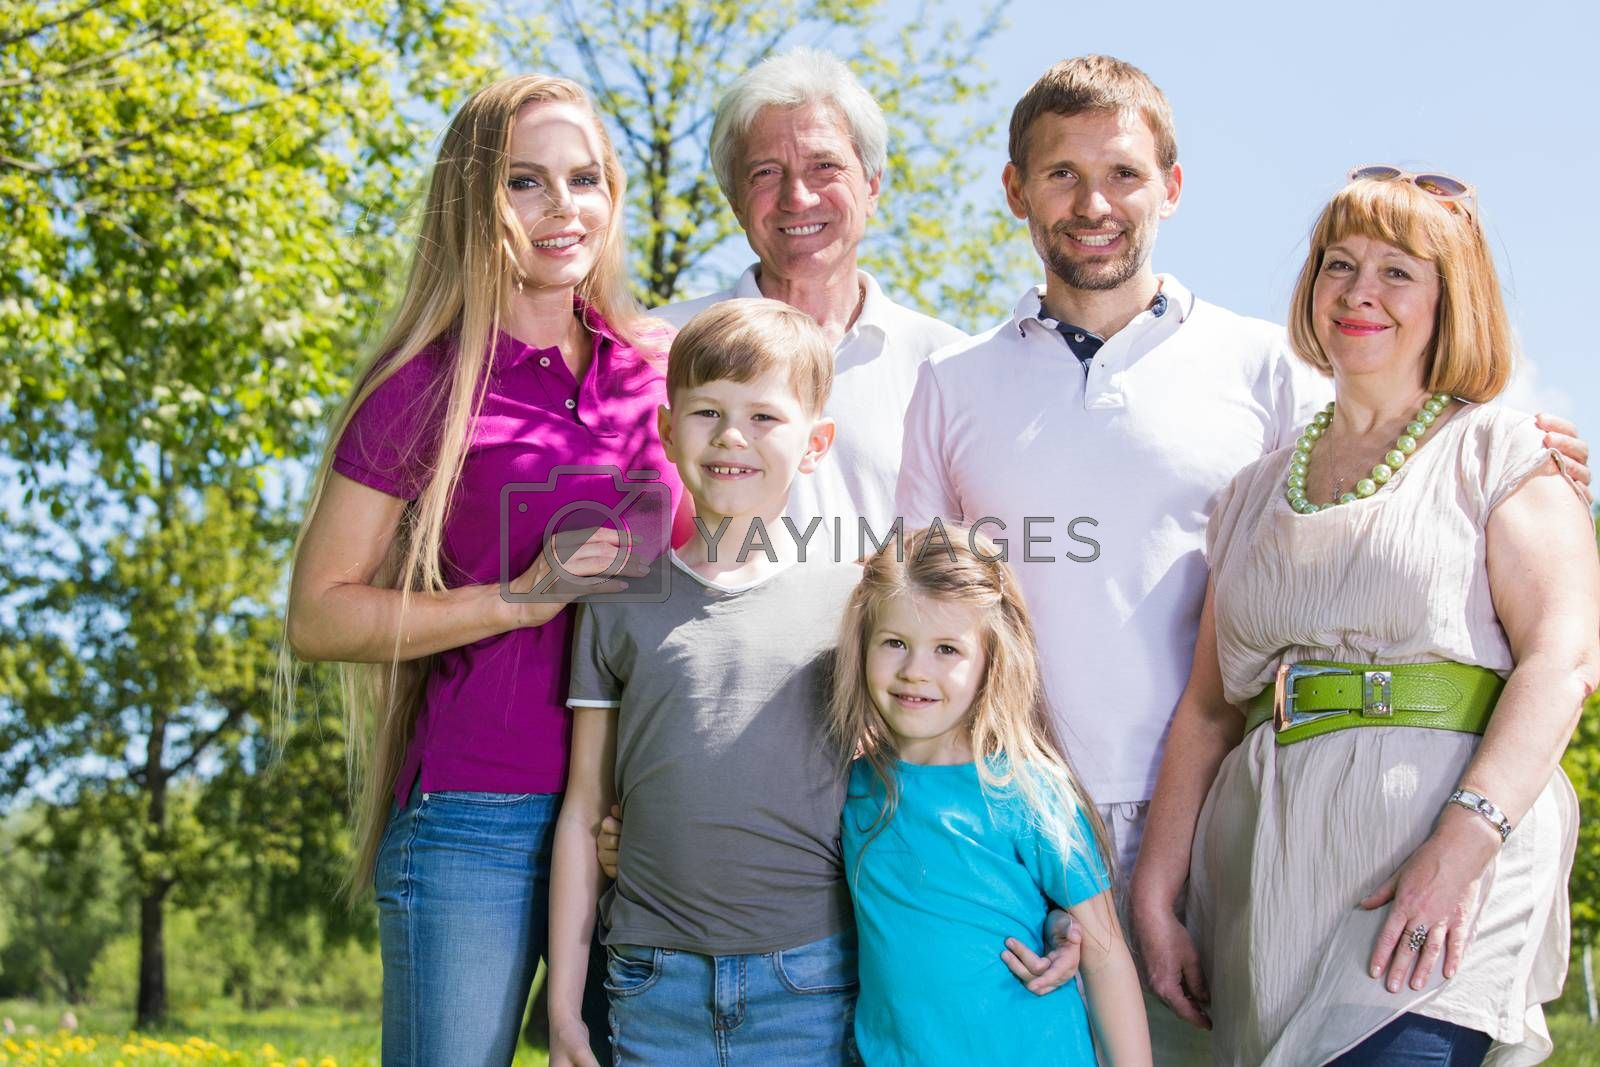 Multigeneration family portrait outdoors. Happy parents with two children and grandparents in summer park